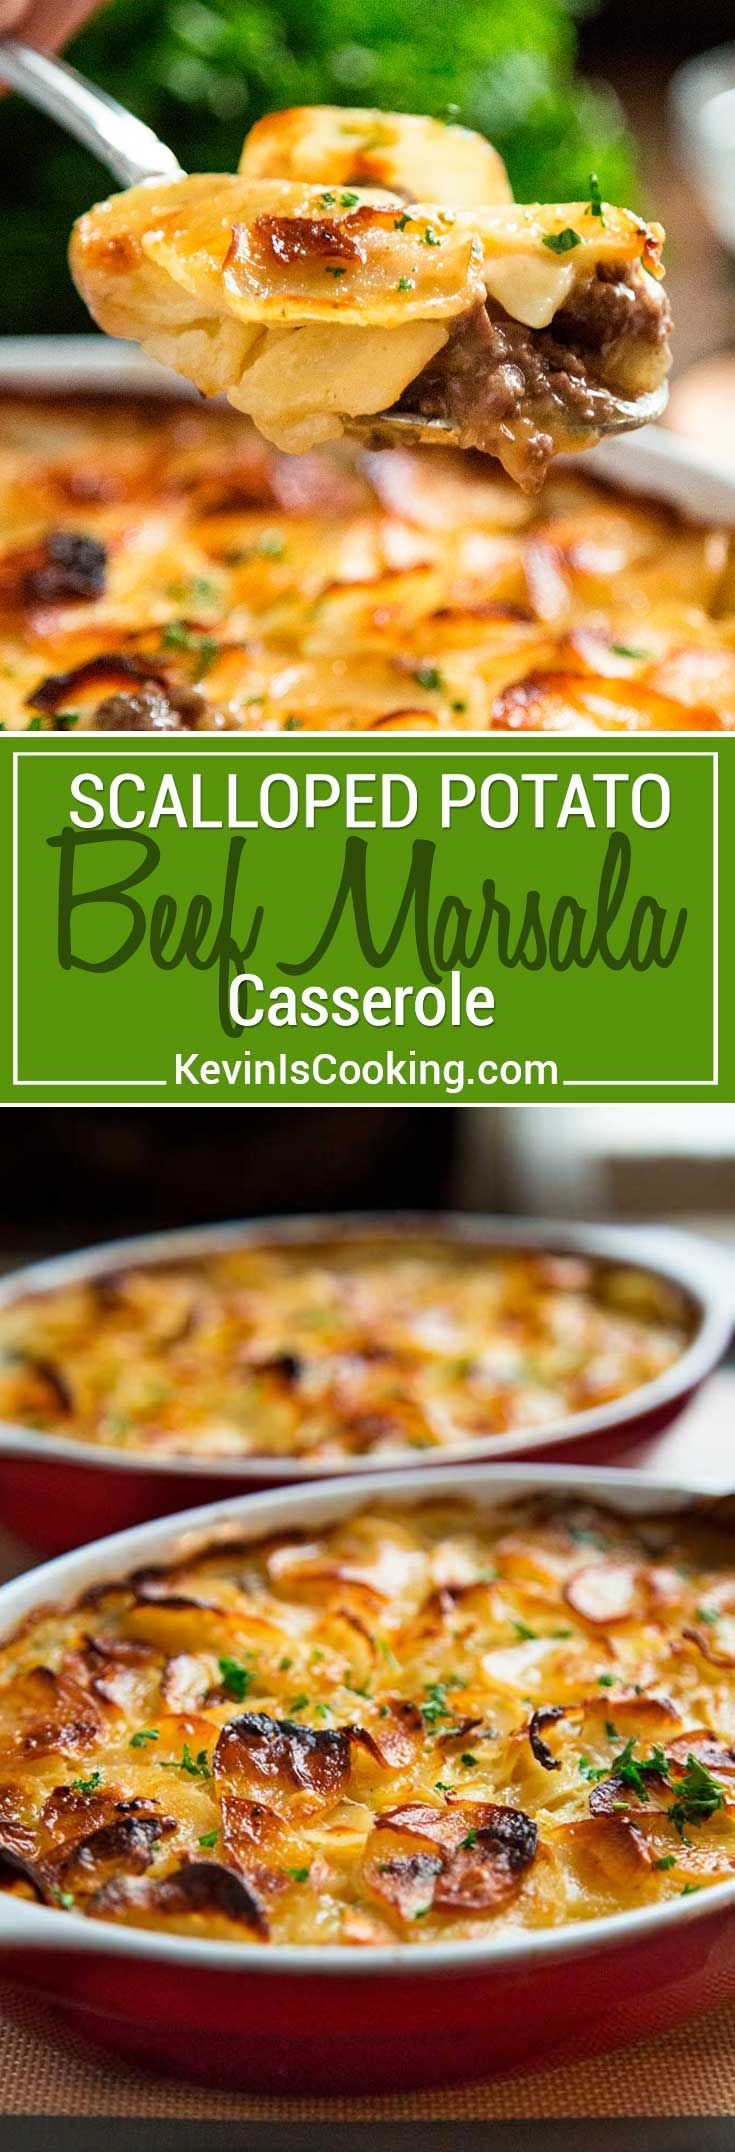 This Beef Marsala and Scalloped Potato Casserole has ground beef in a savory, delicious marsala wine sauce all layered with scalloped, cheesy potatoes.